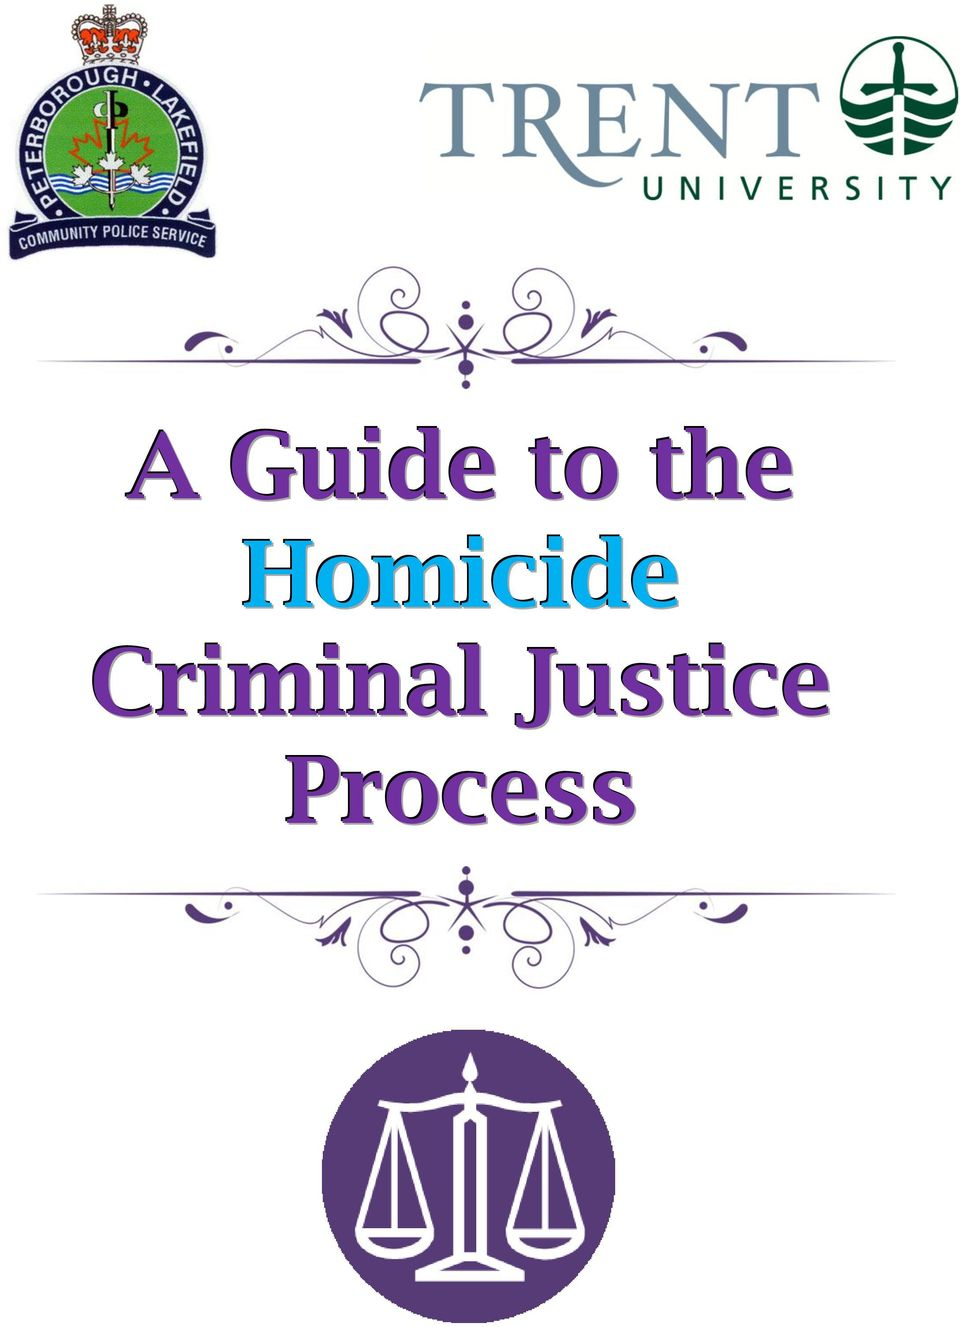 medium resolution of 2 p a g e 2 table of contents homicide case flowchart 3 overview of homicide trial 4 location of local court houses 5 general courtroom diagram 6